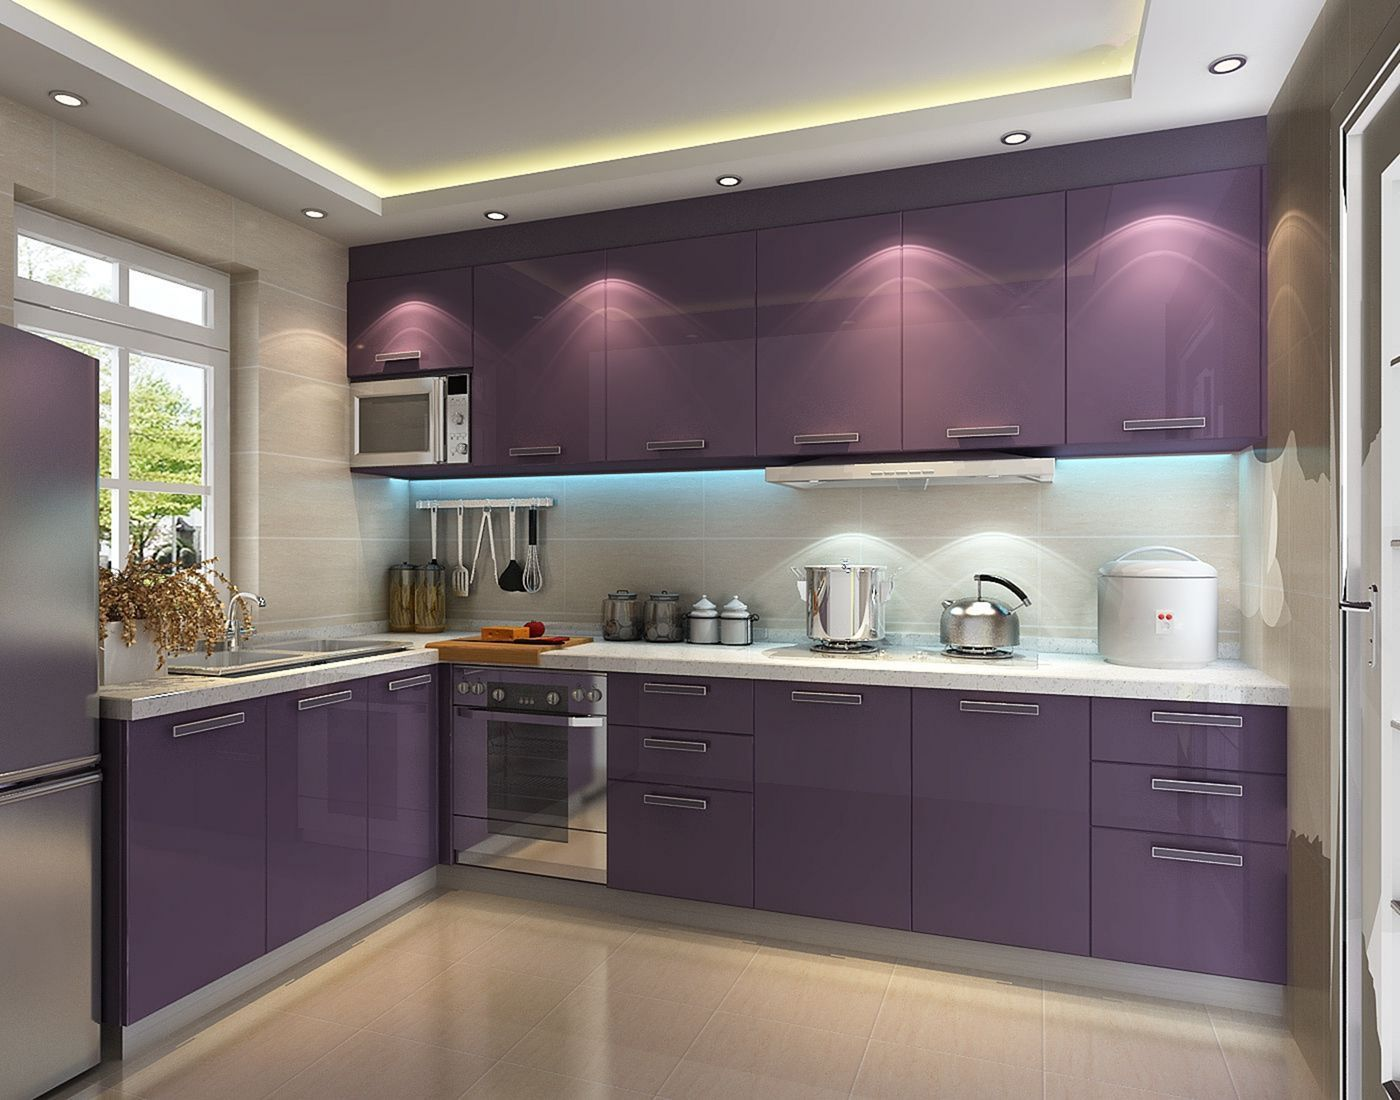 Purple Kitchen Decorating Ideas.Pin By General Finishes On Cabinet Finishes Purple Kitchen